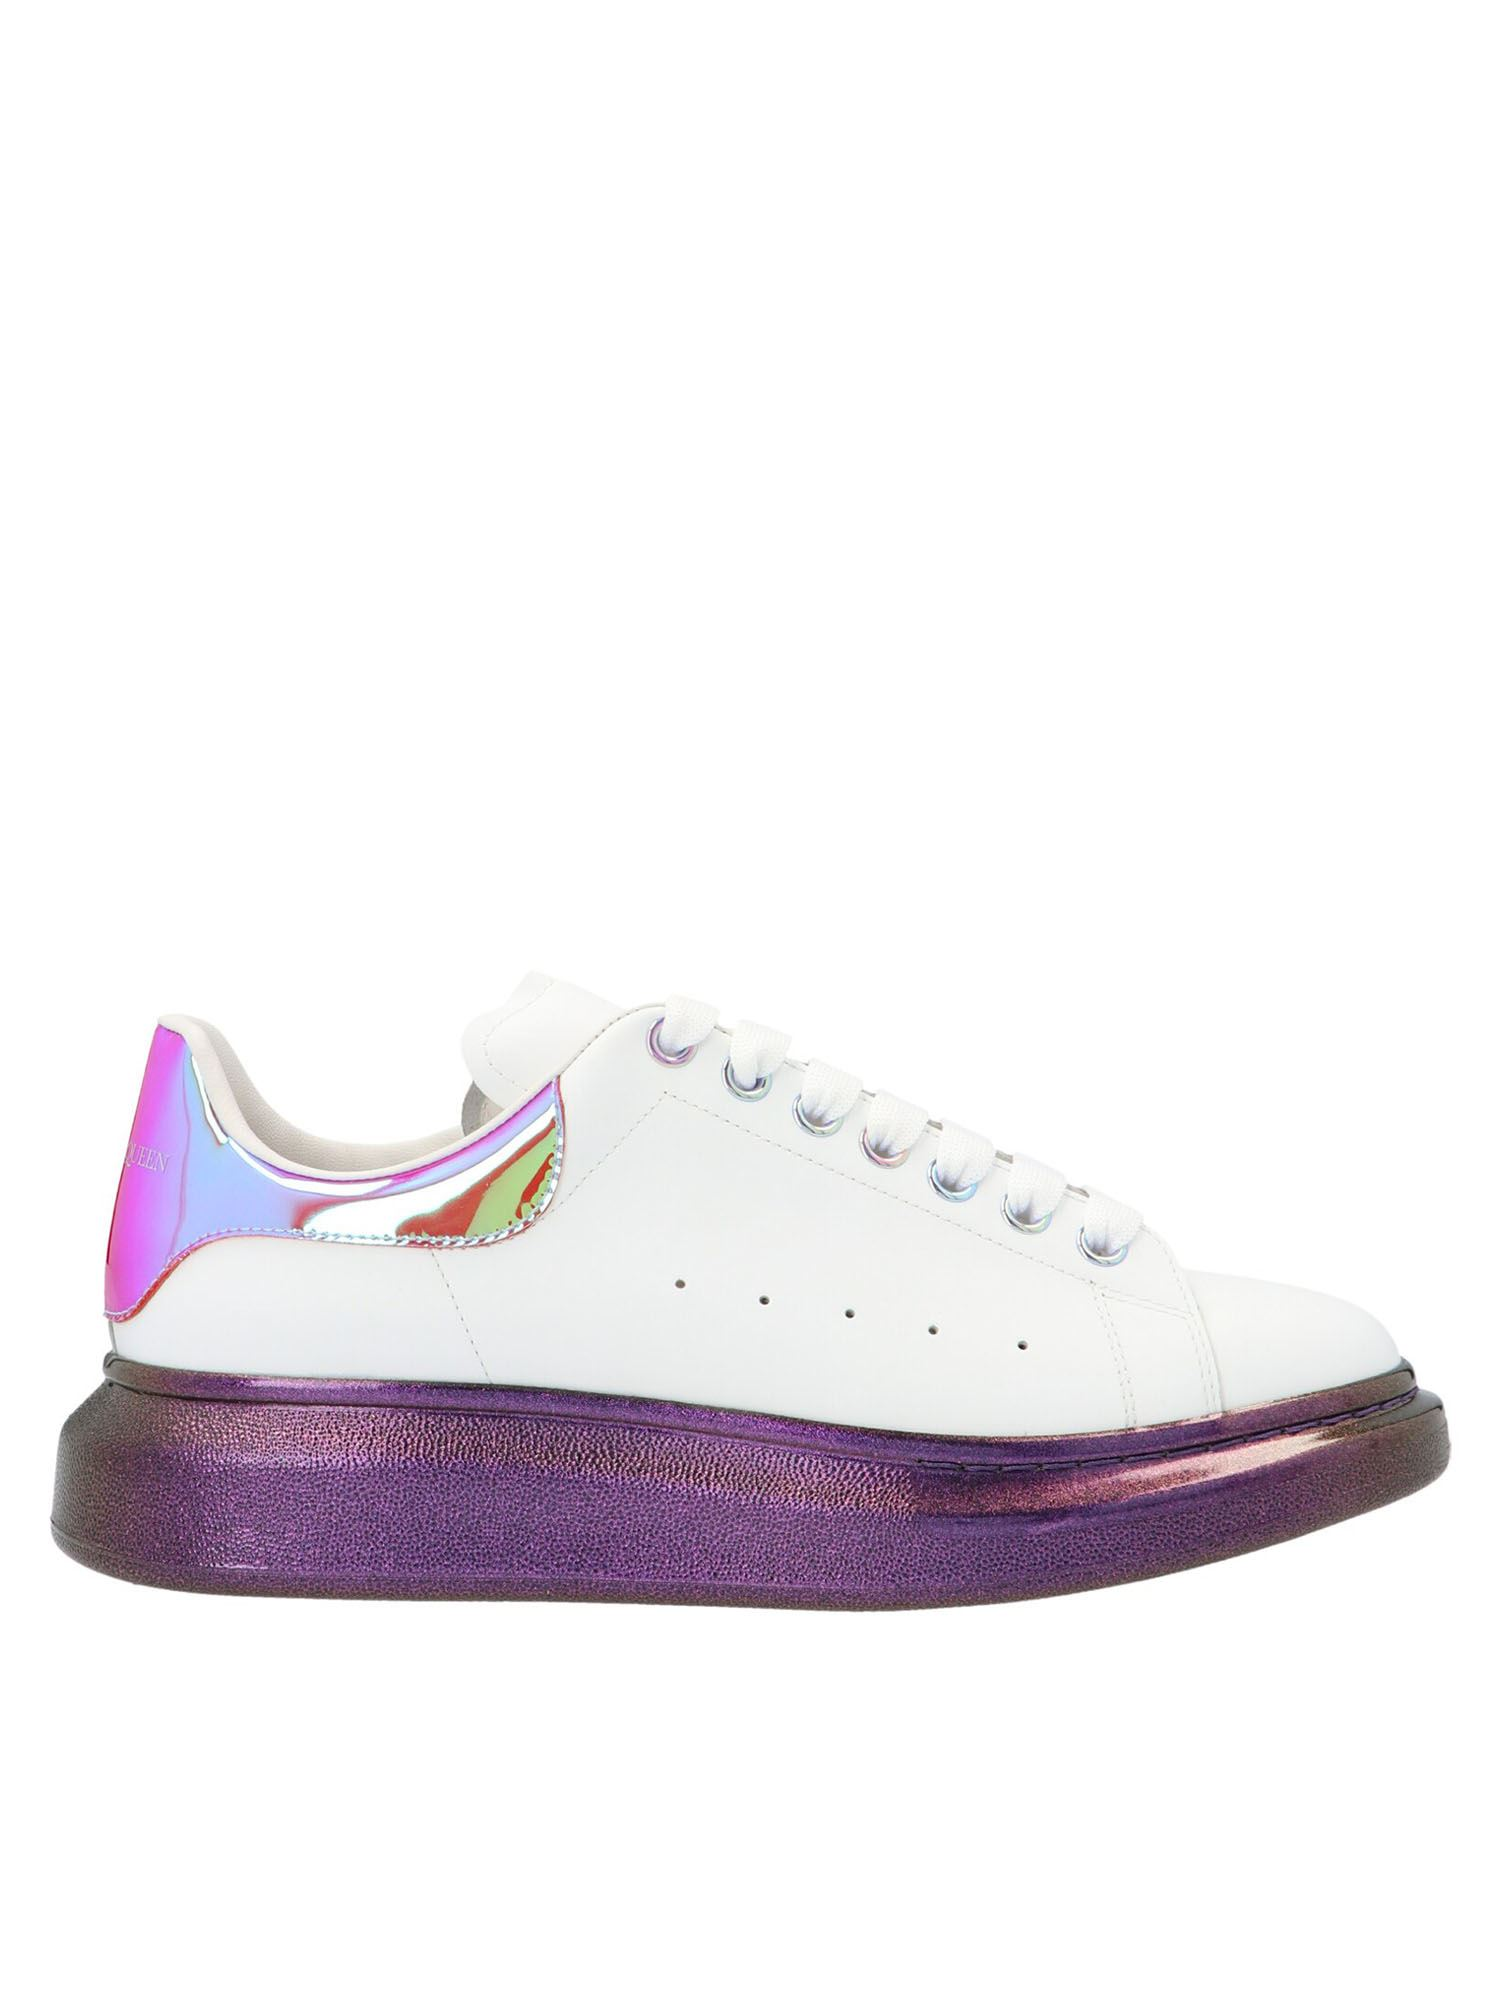 Alexander Mcqueen ALEXANDER MCQUEEN OVERSIZE SNEAKERS IN WHITE AND PURPLE